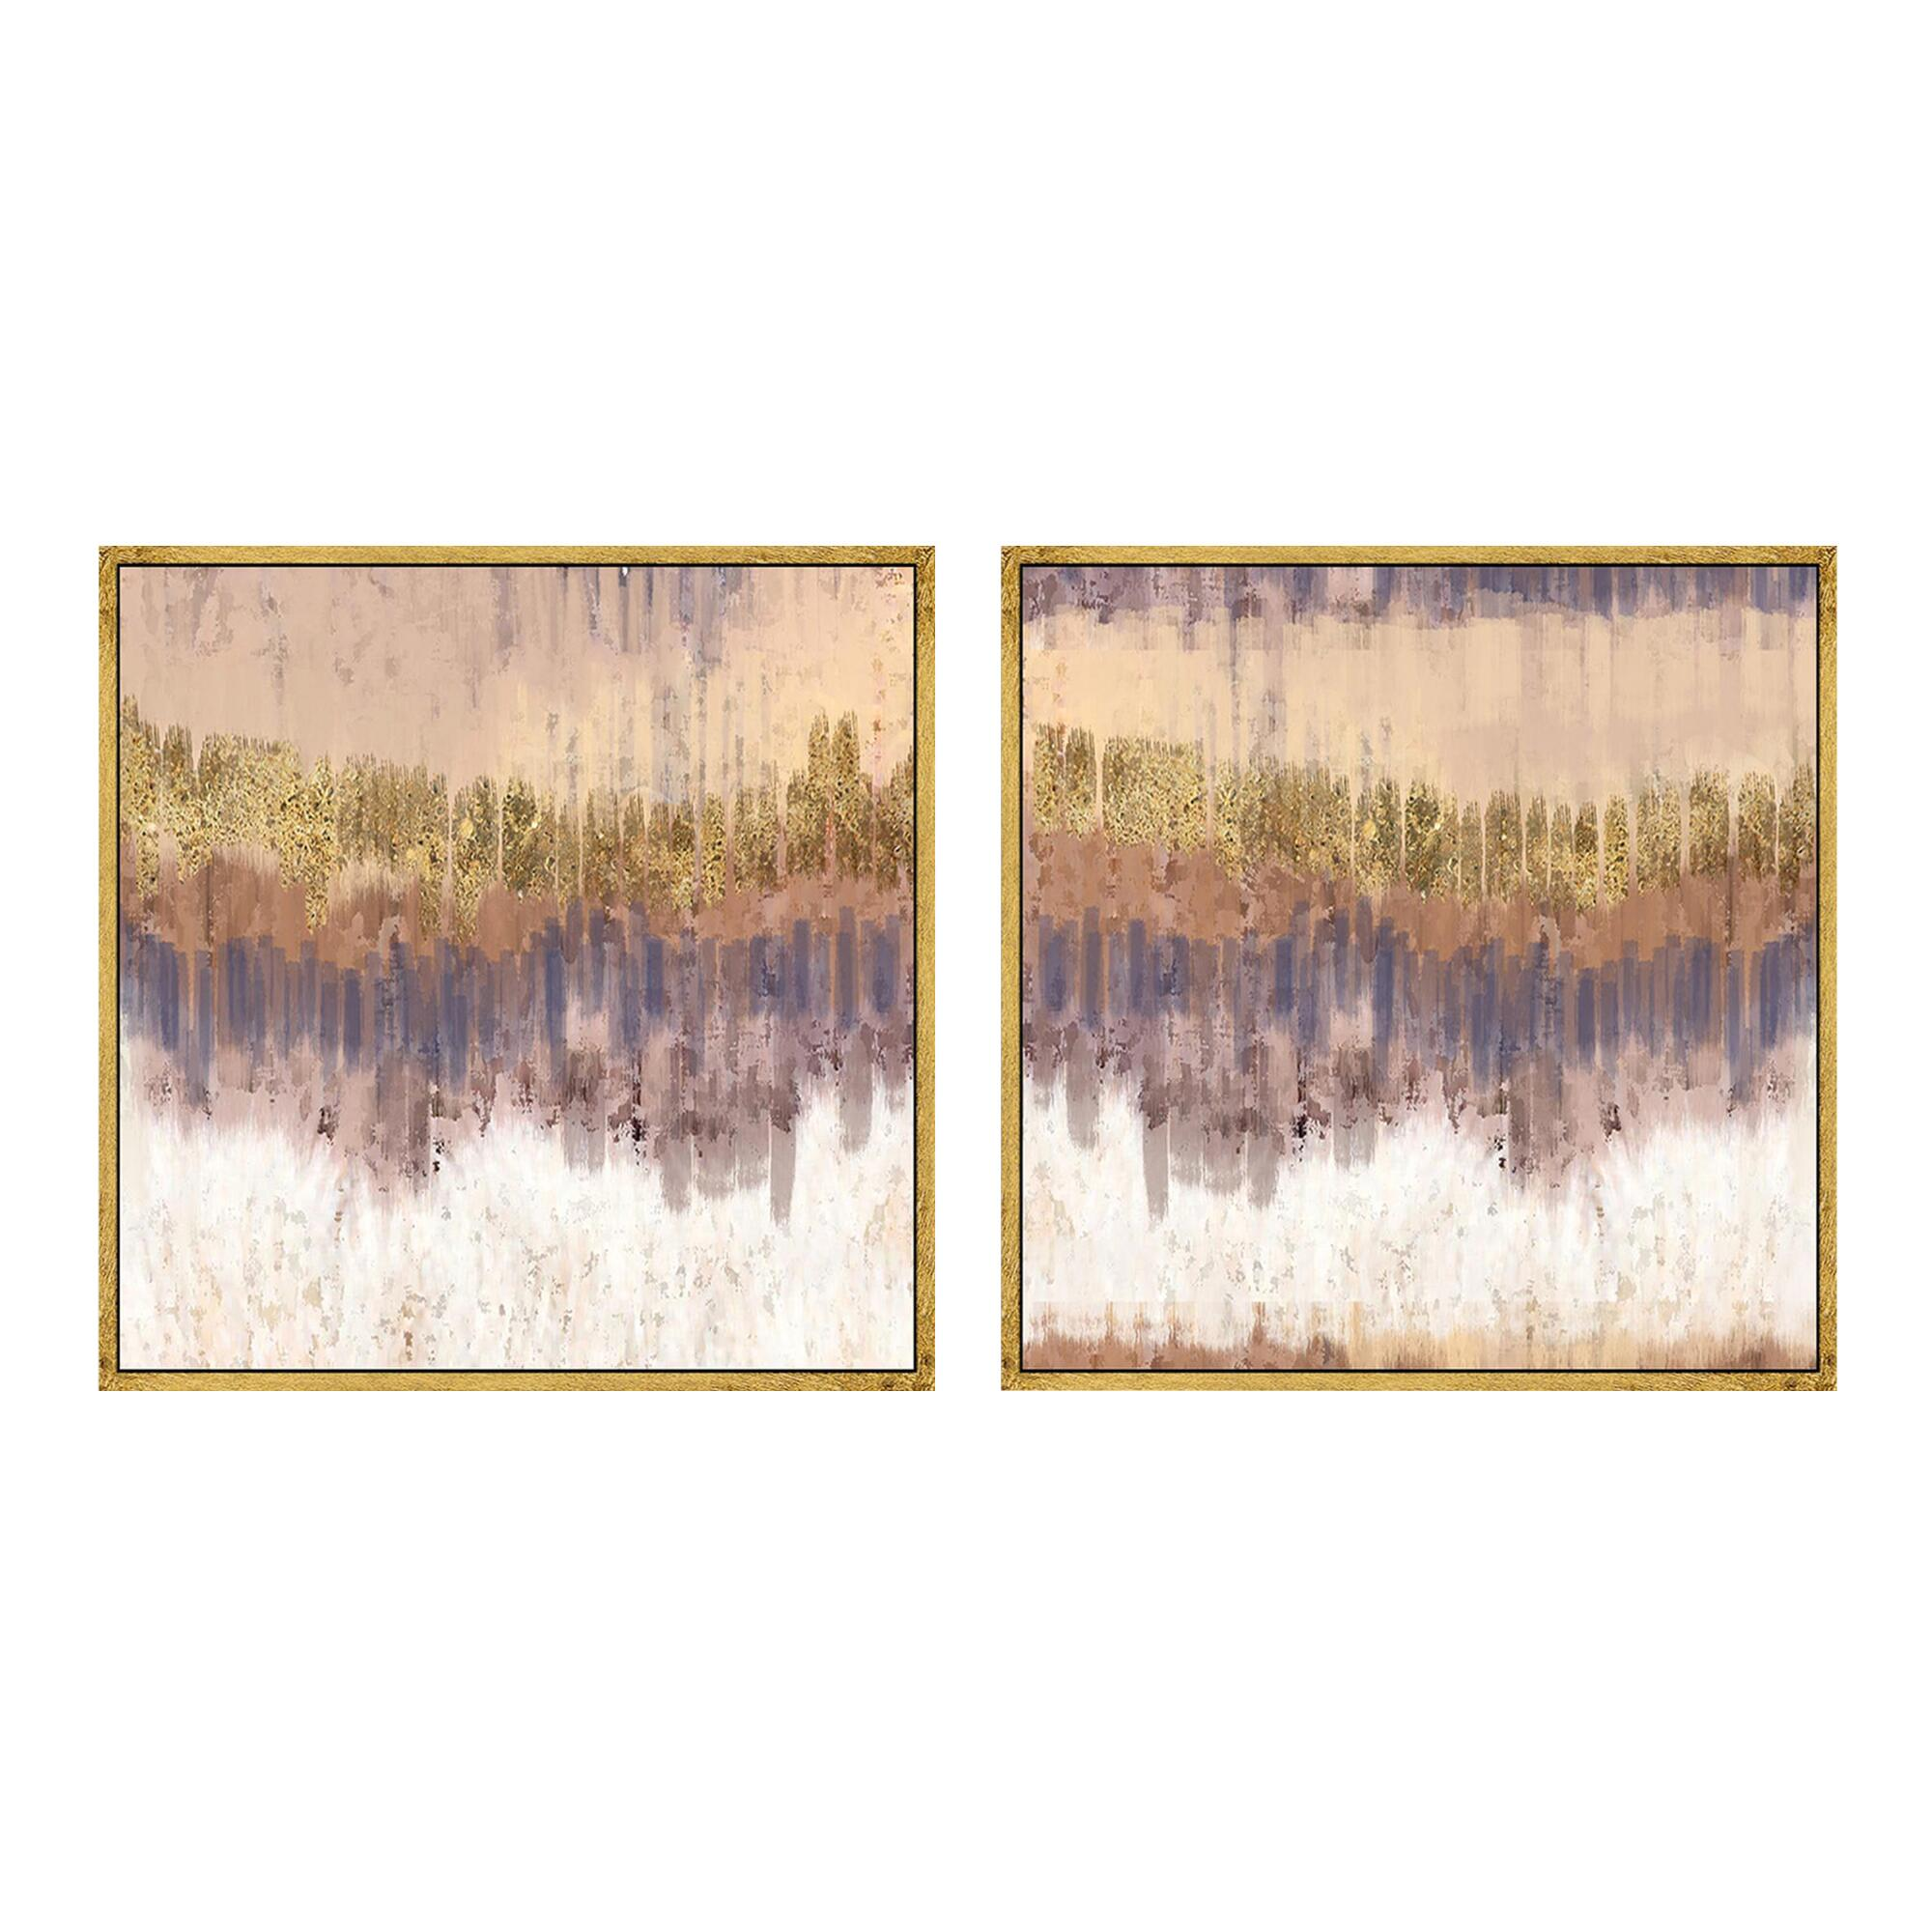 Wall Art Decor Gold : Golden field abstract canvas wall art gold leaf set of